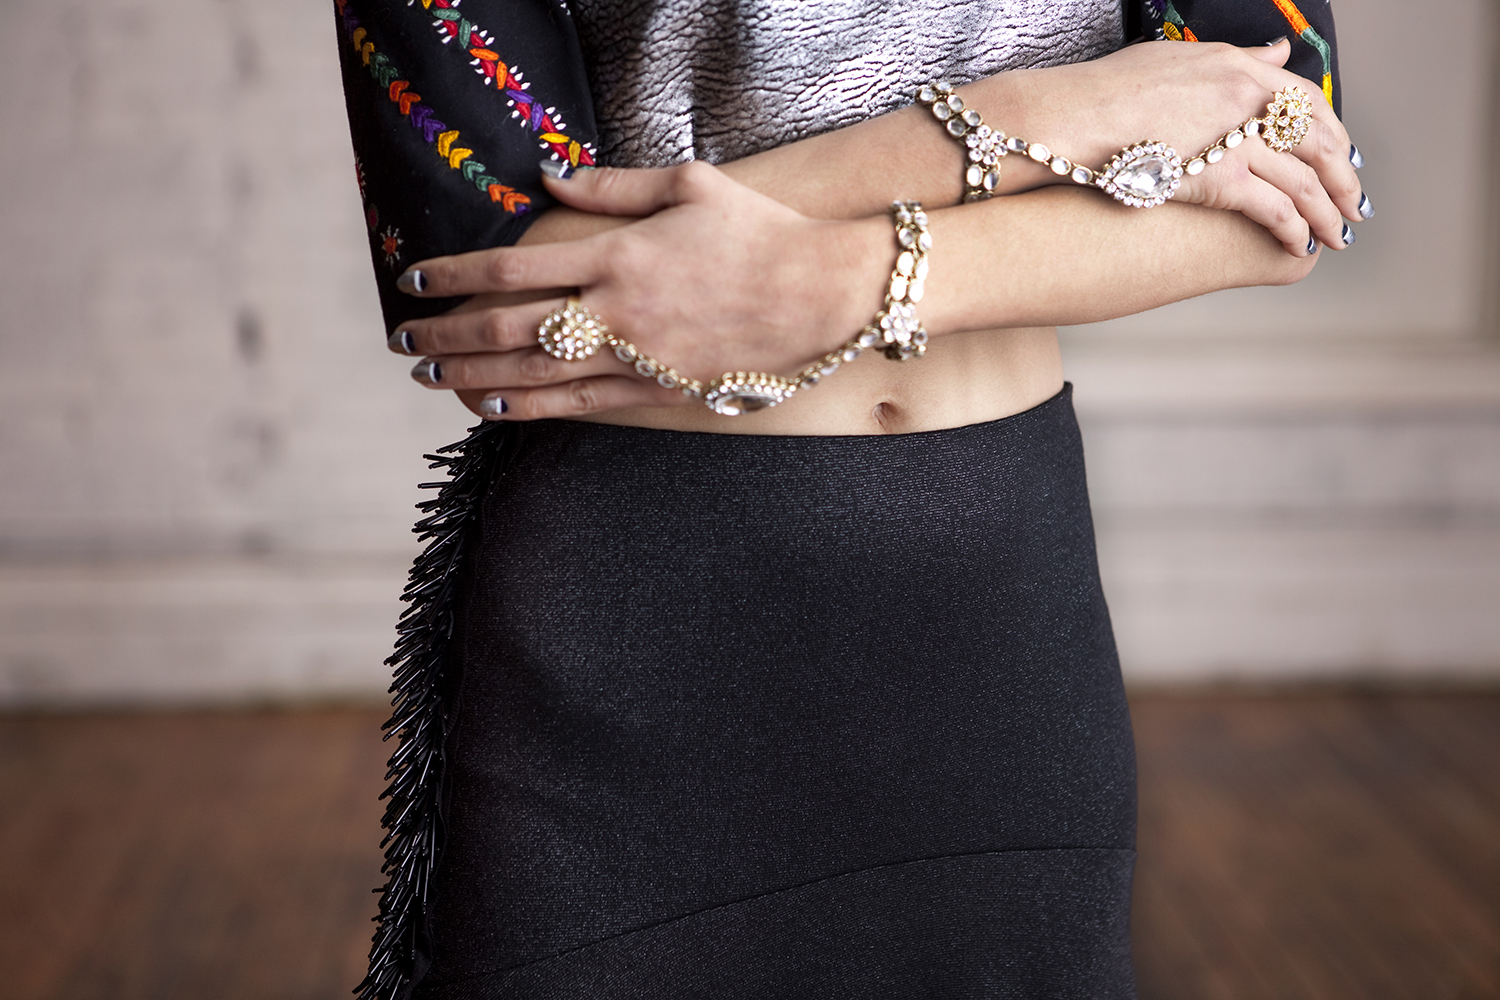 Beaded Slit Maxi Skirt,  Panja Bracelets